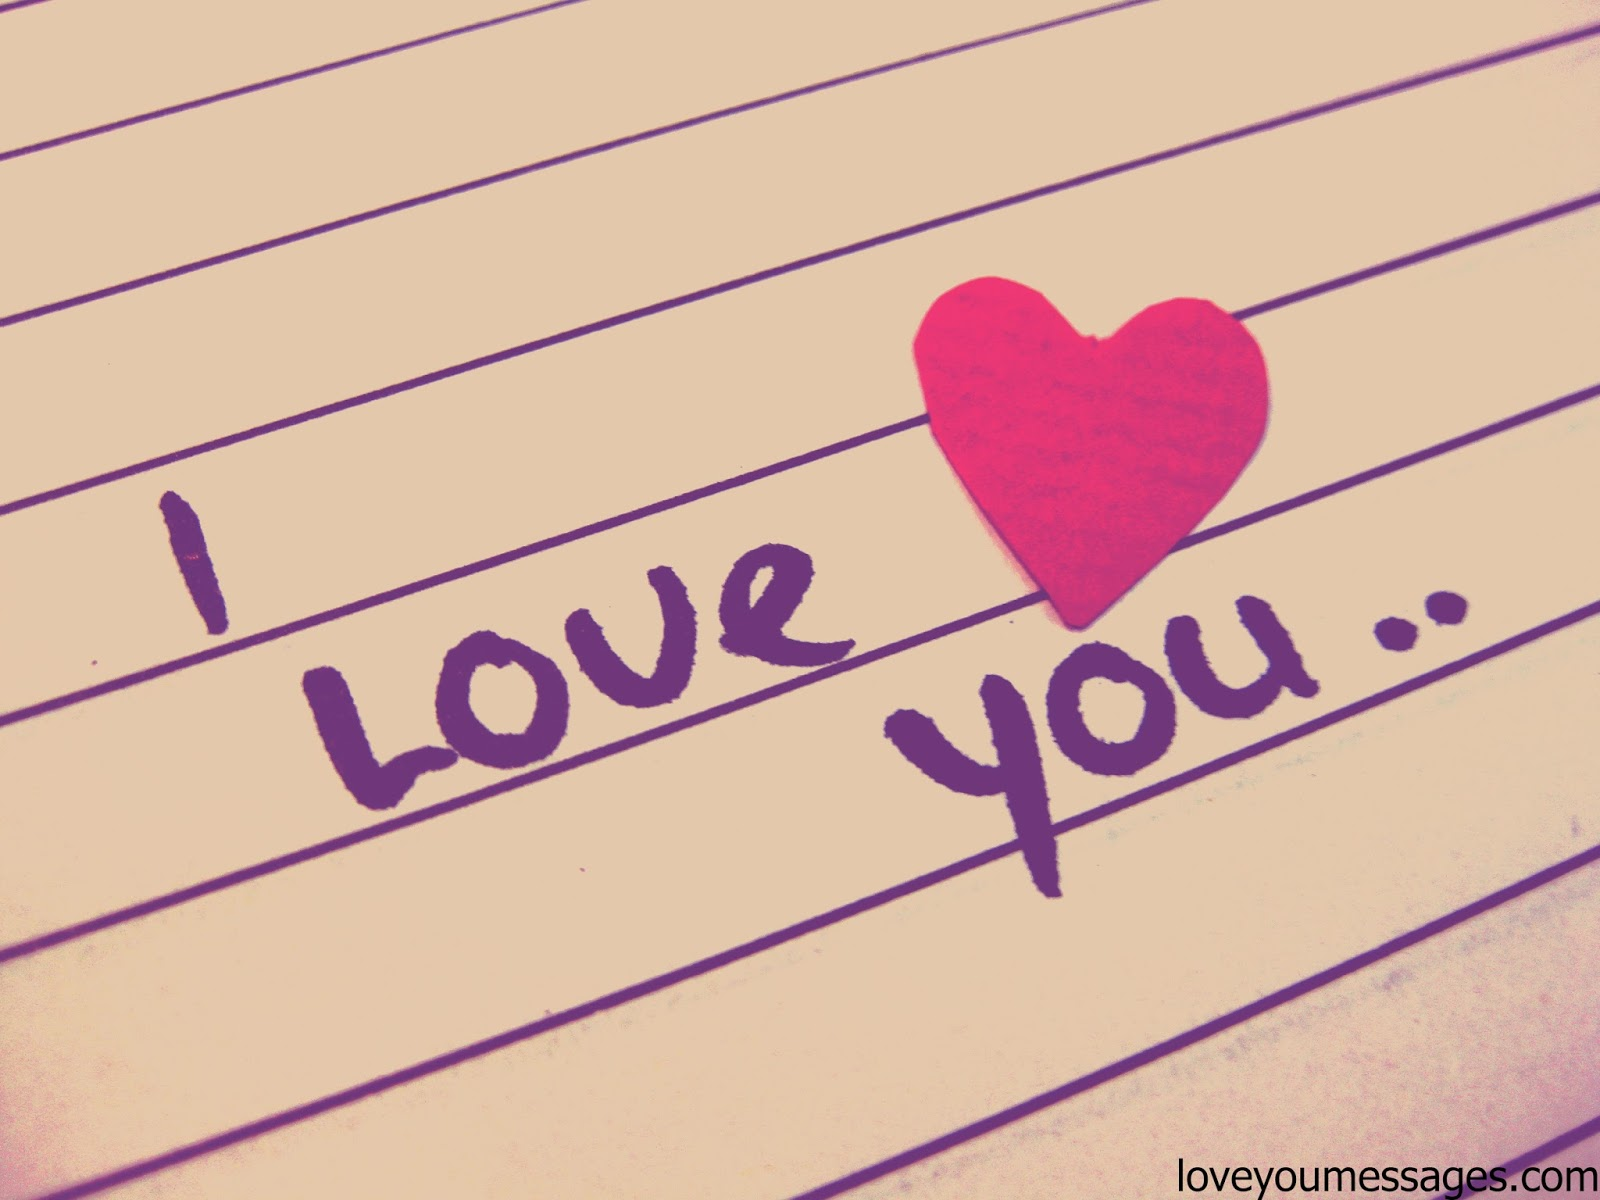 I Love You Messages Deep Love Messages For Her Love You Messages